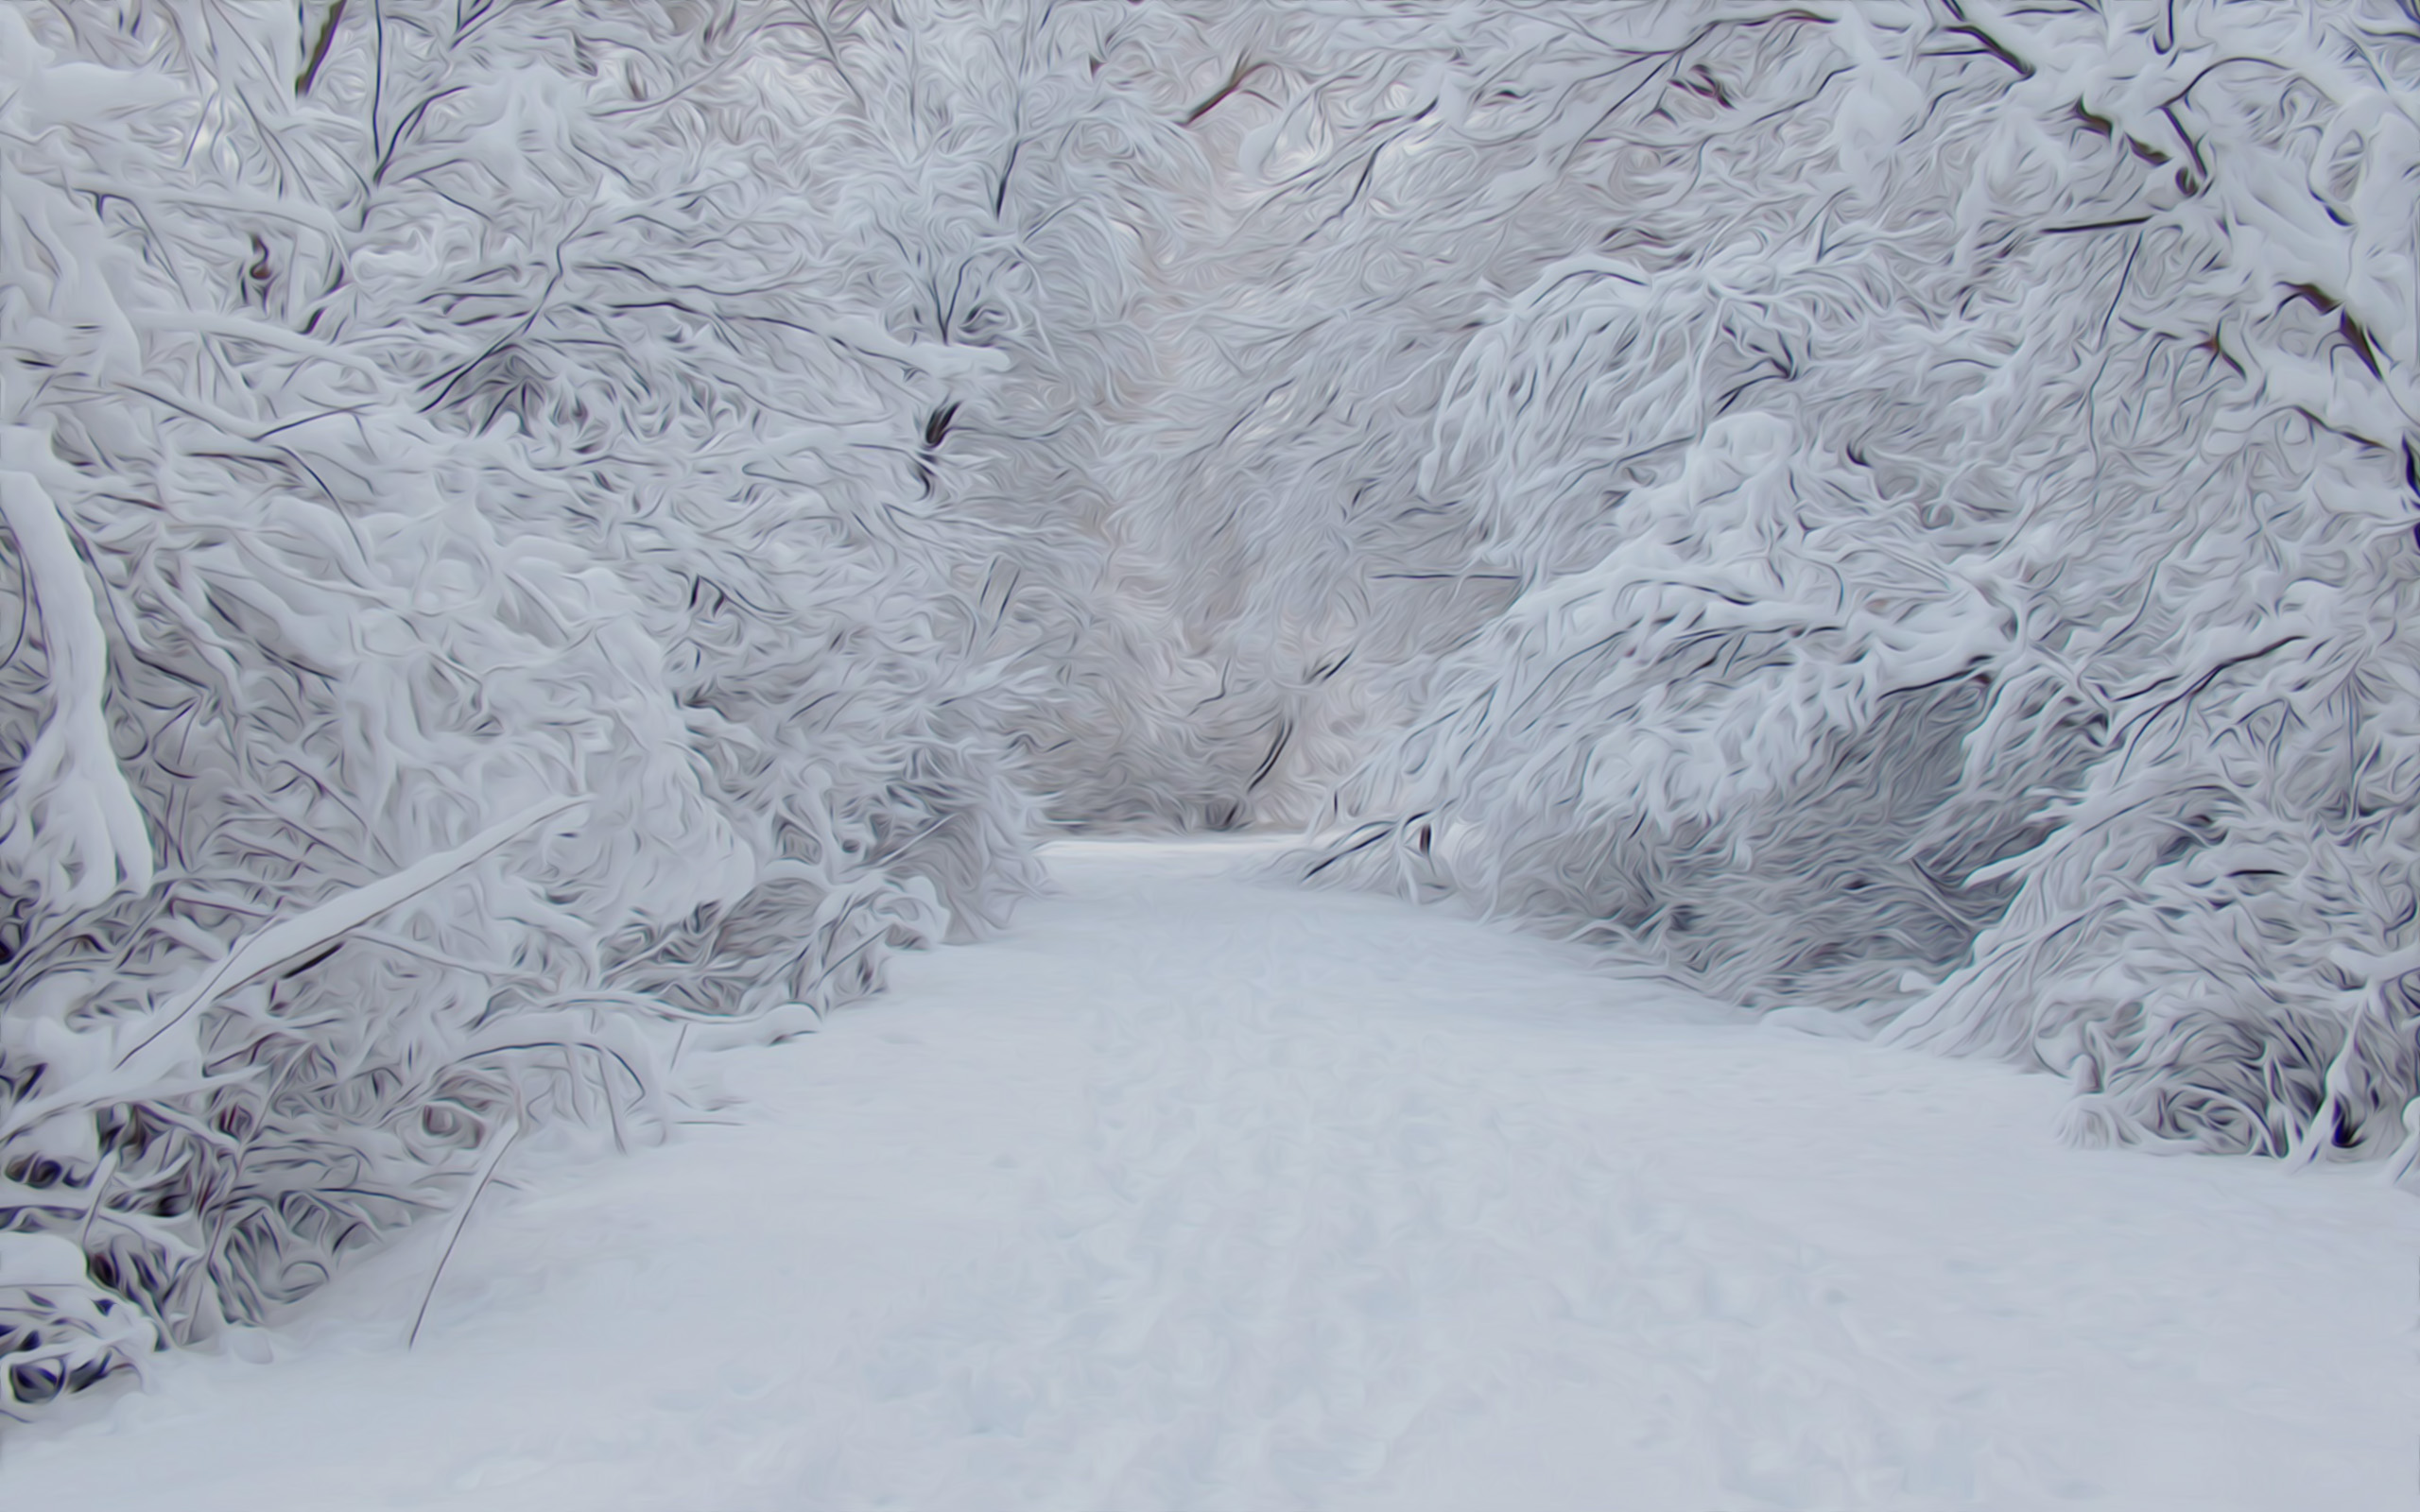 Winter images snowy snow HD wallpaper and background photos 34209346 2560x1600